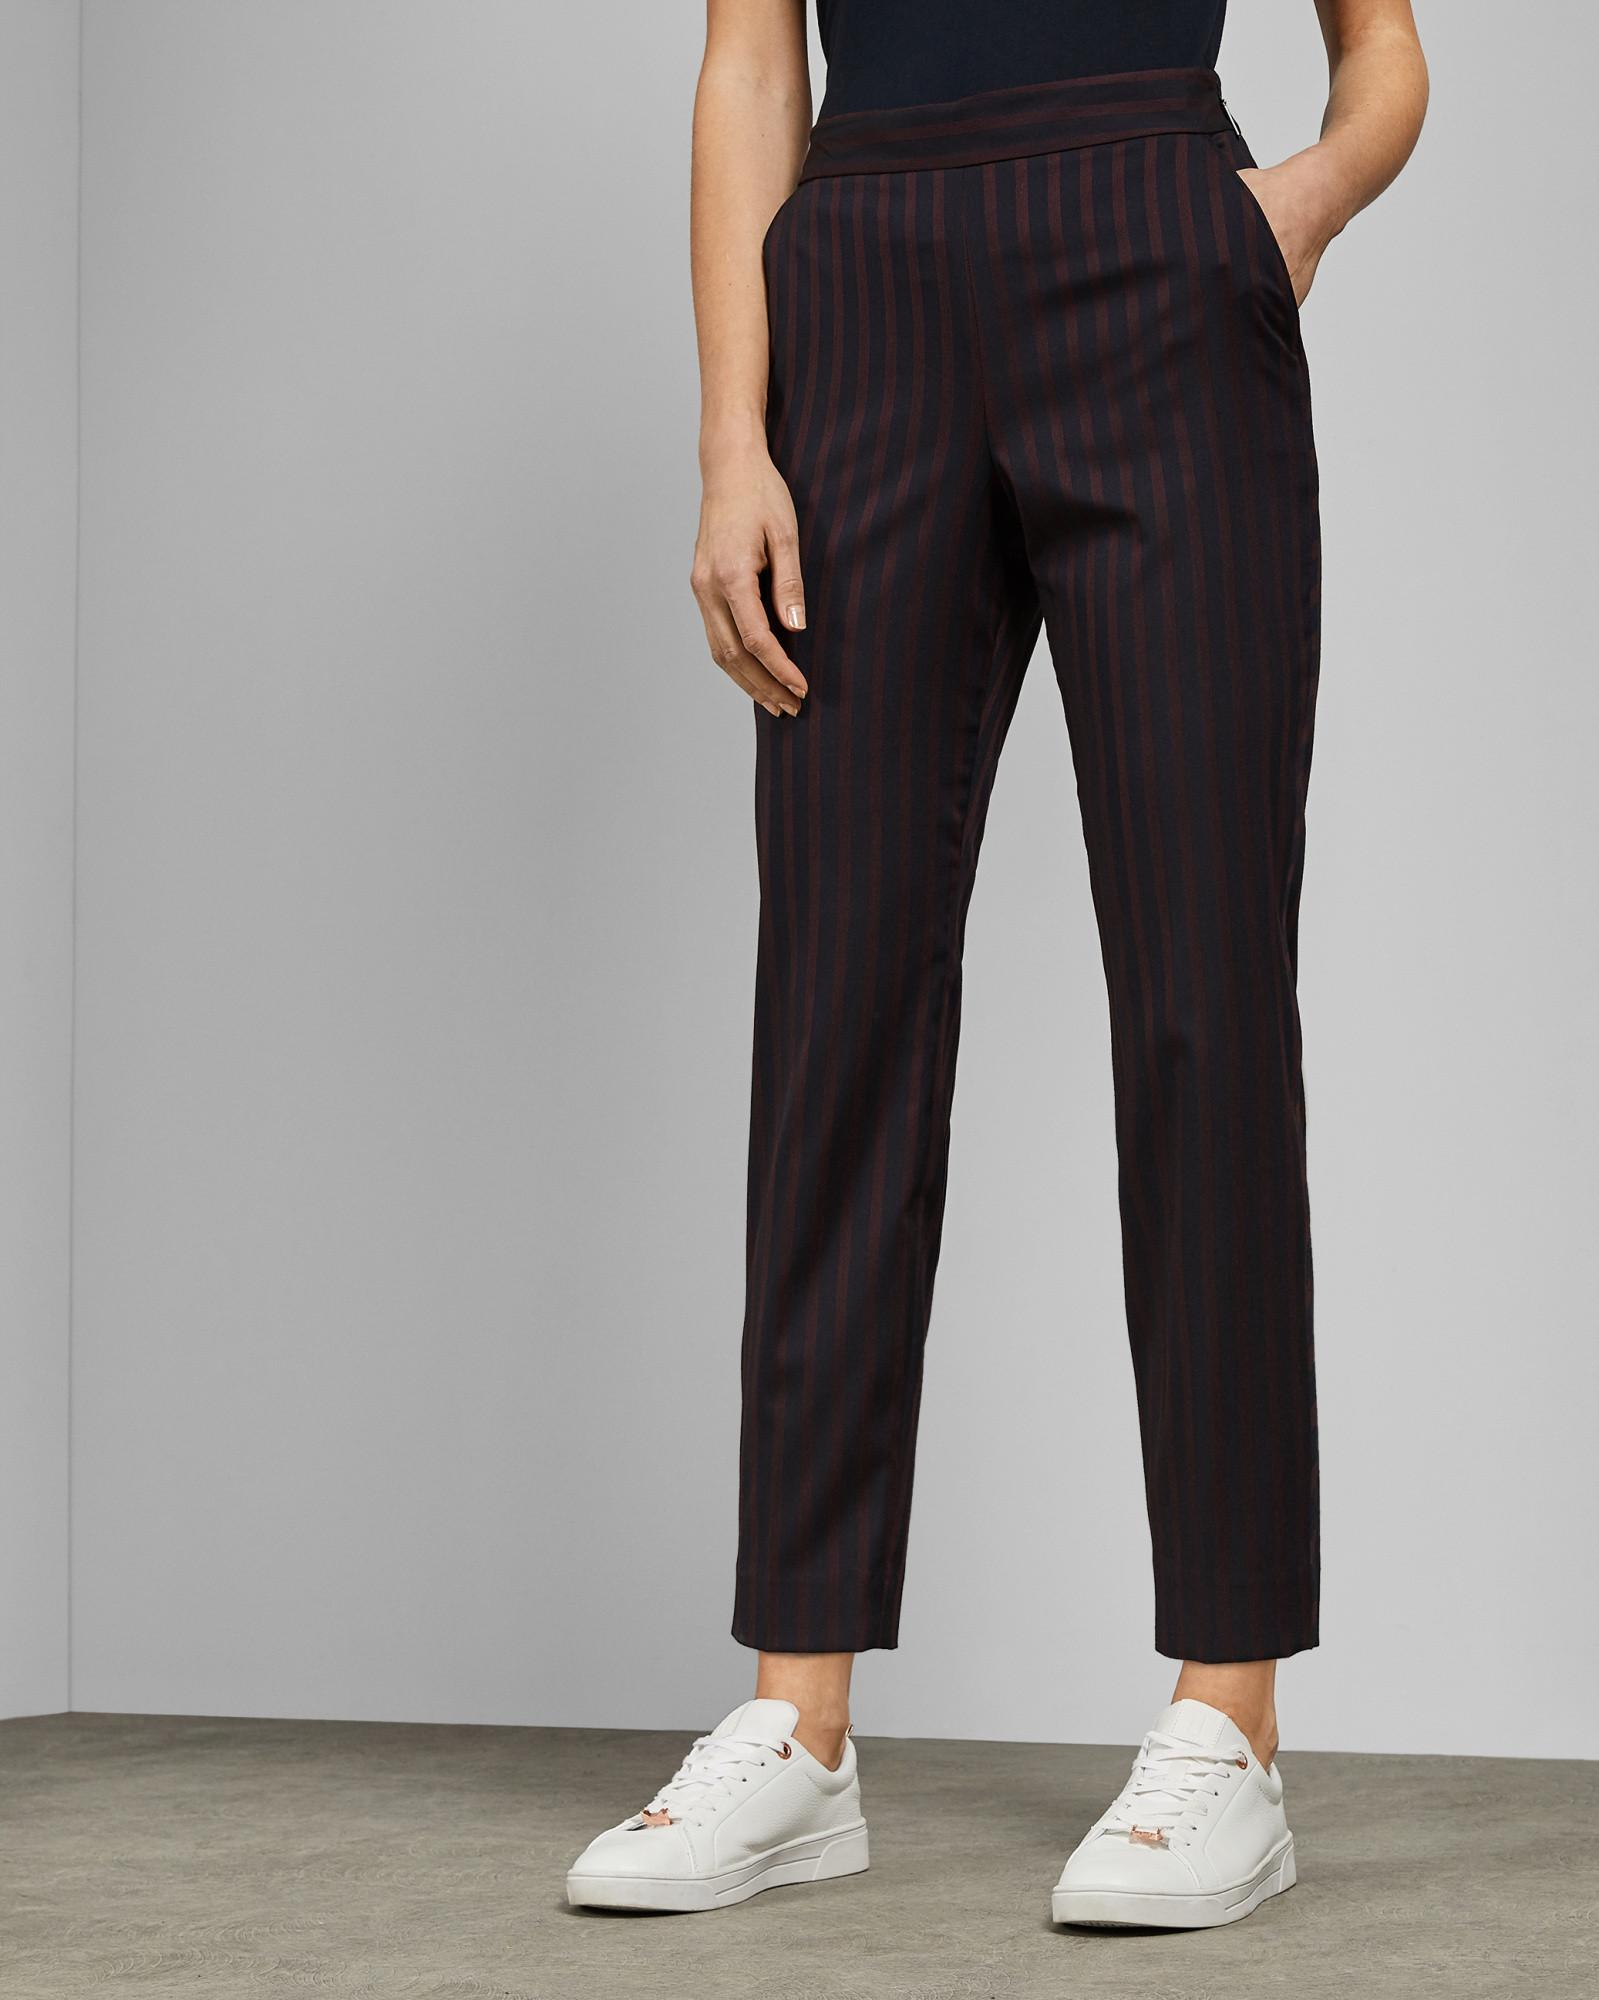 71a80a70d767 Ted Baker Tapered Cropped Trousers in Blue - Lyst